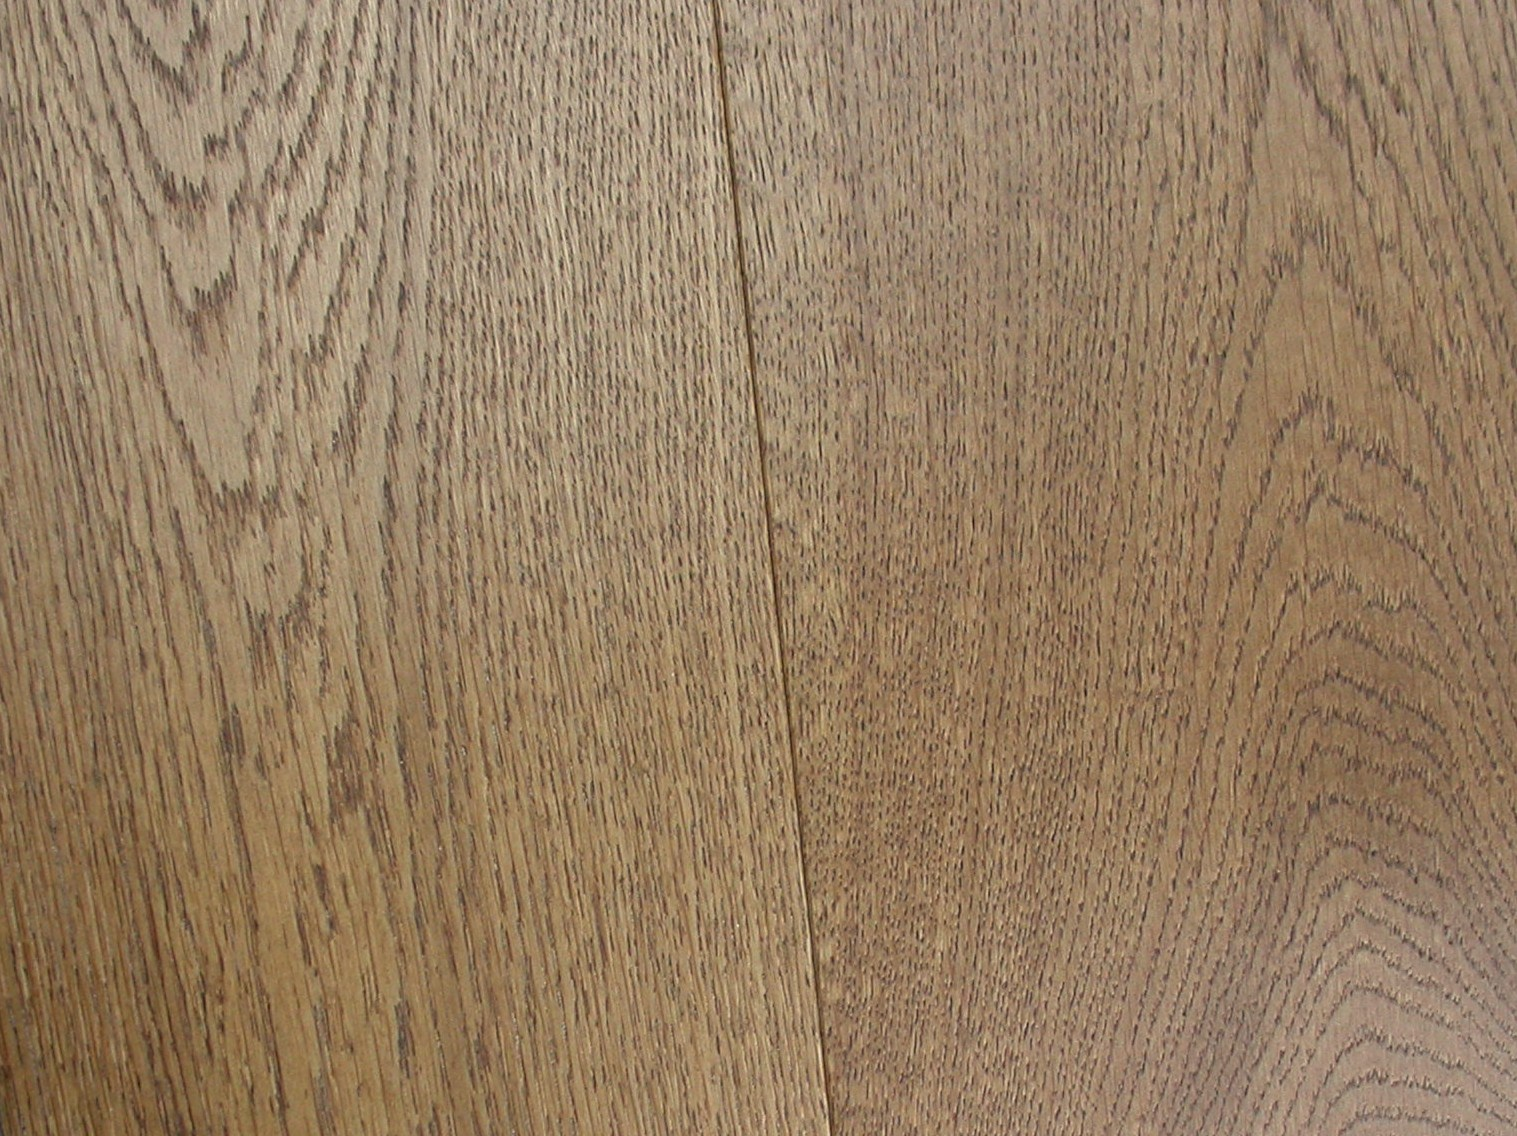 OAK RUSTIC LACQUERED